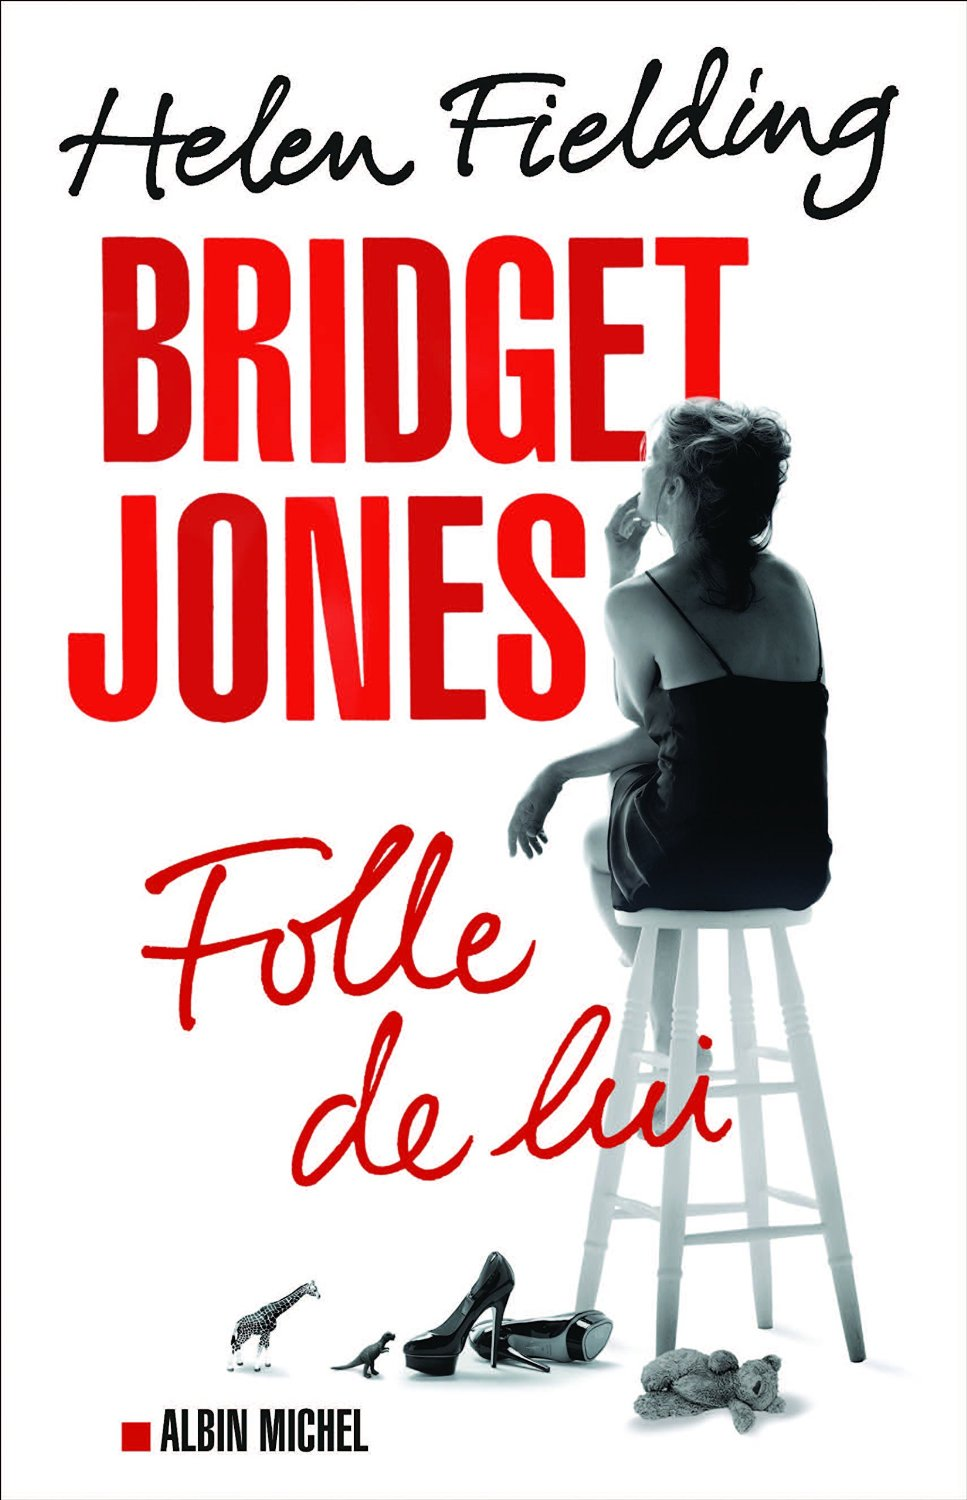 http://monpetitblogdelecture.blogspot.be/2015/06/folle-de-lui-le-journal-de-bridget.html